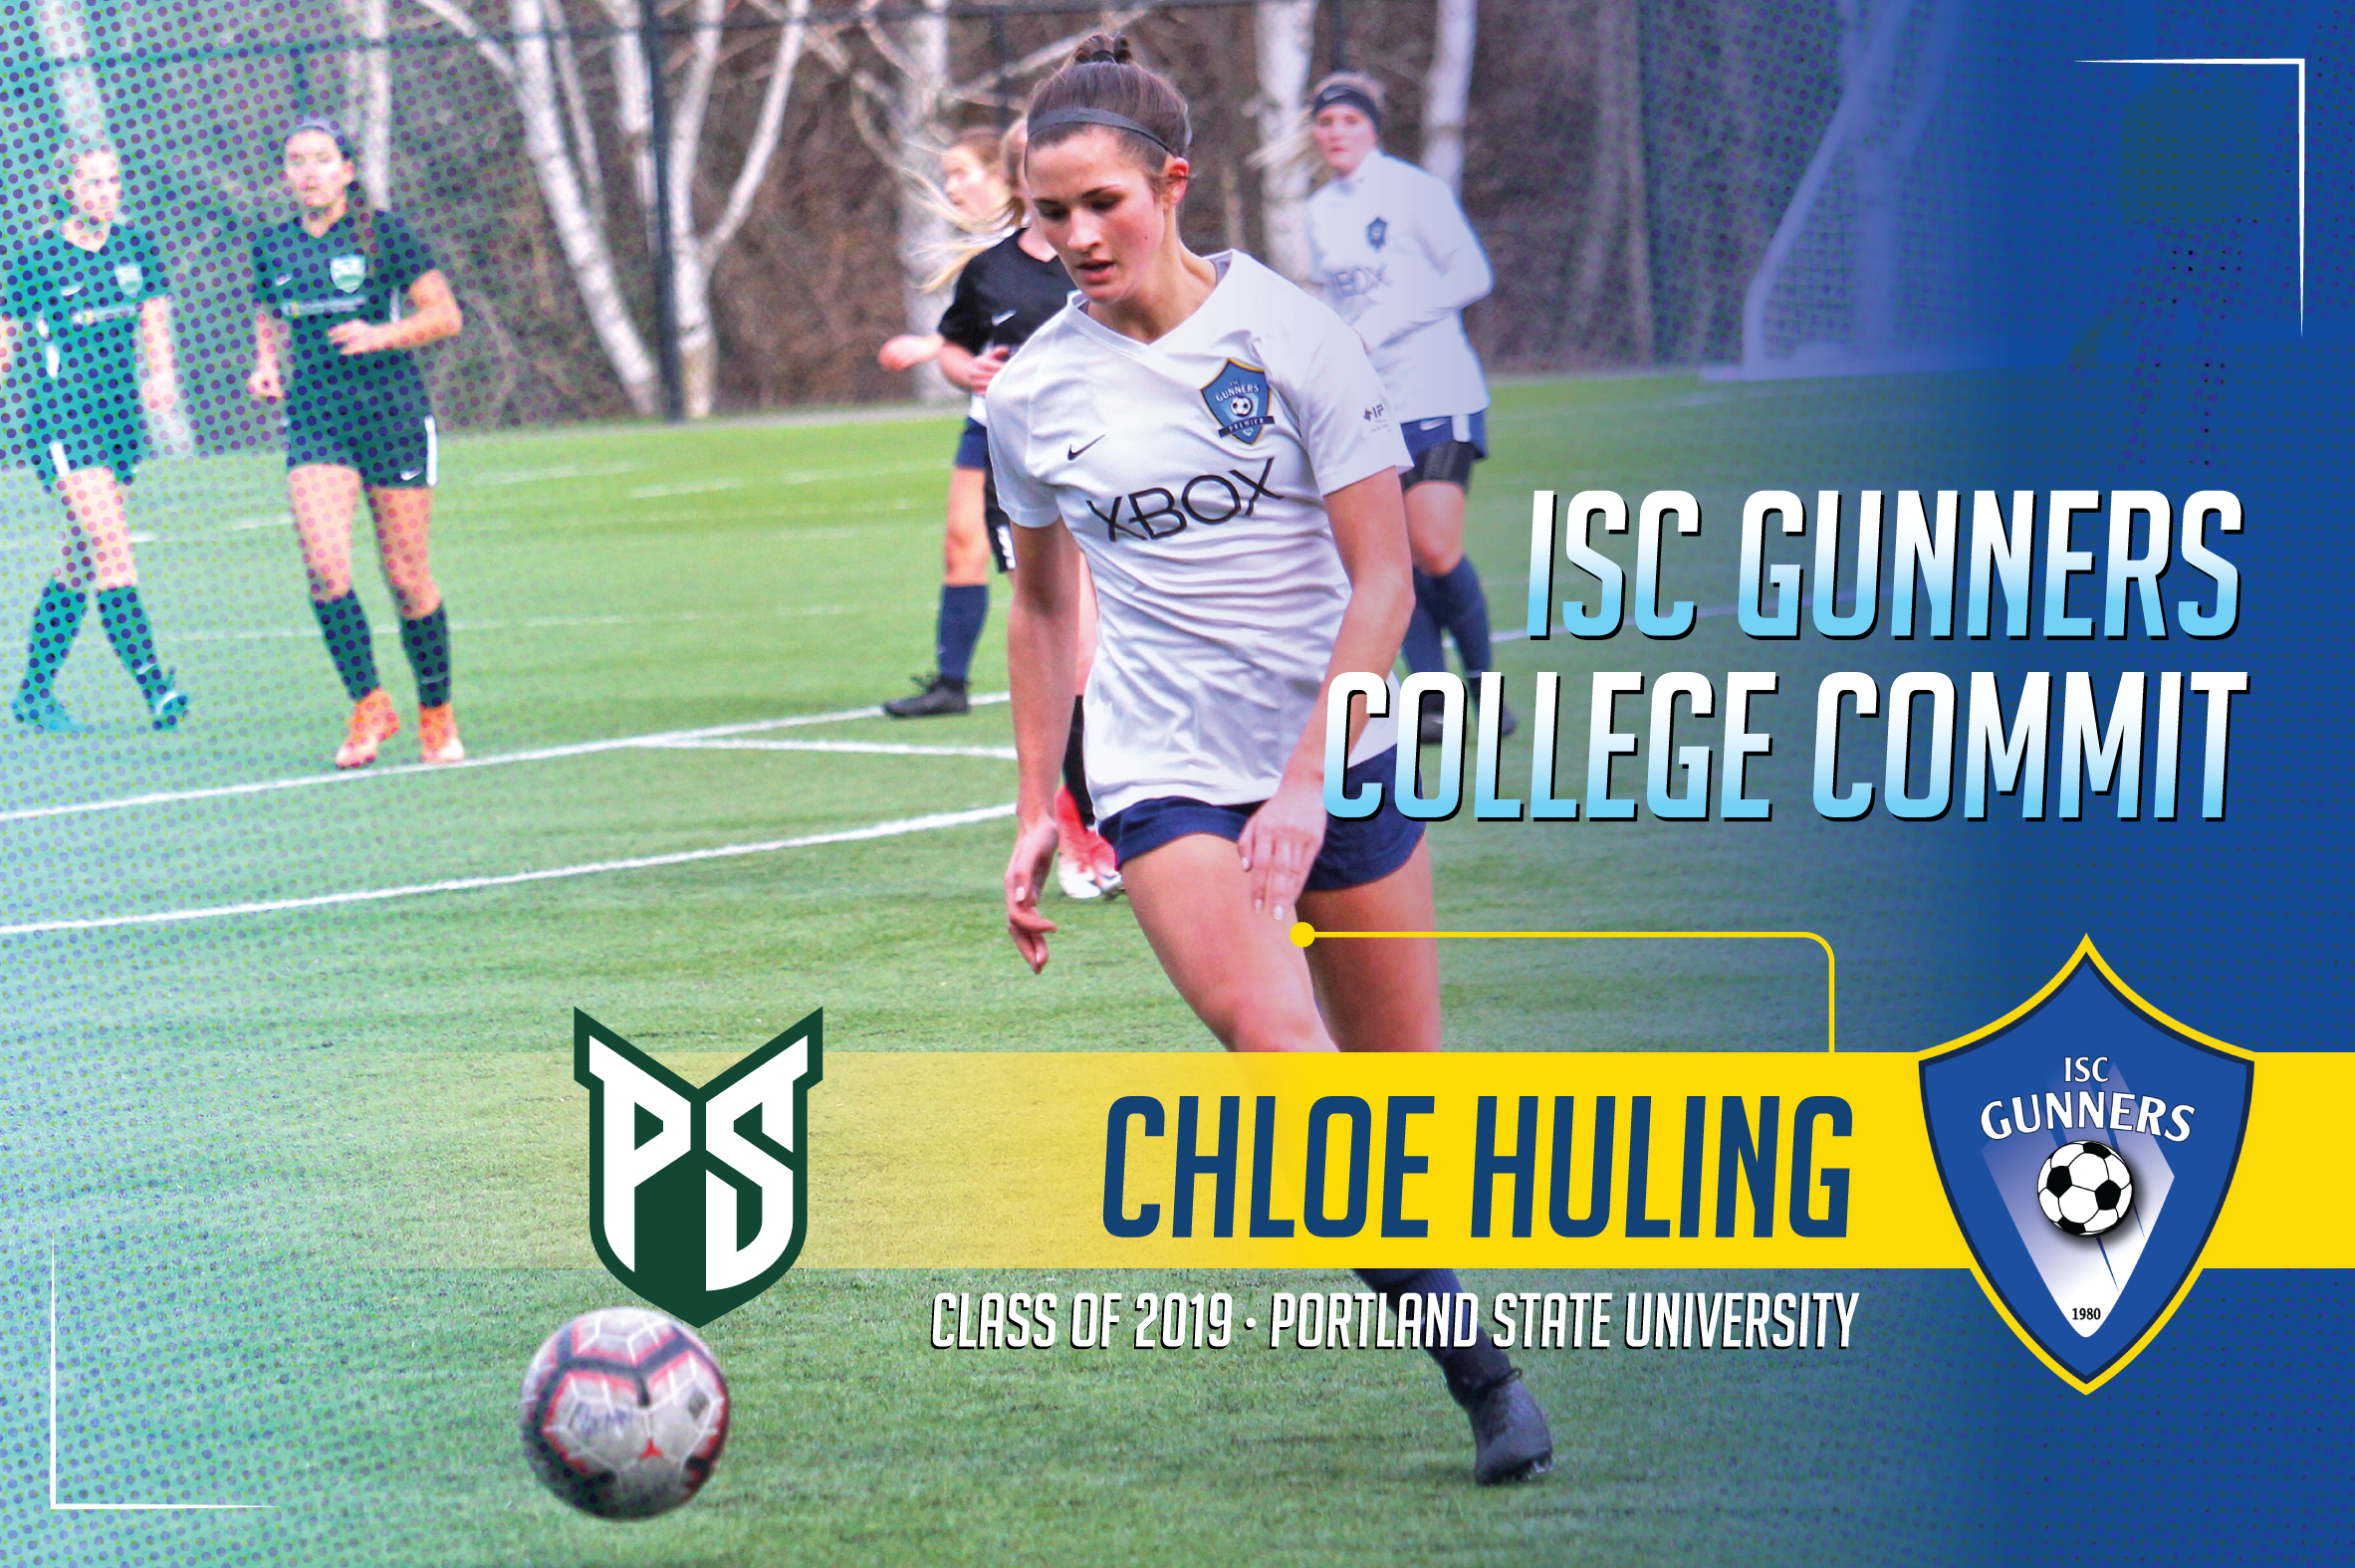 ISC Gunners College Commitments